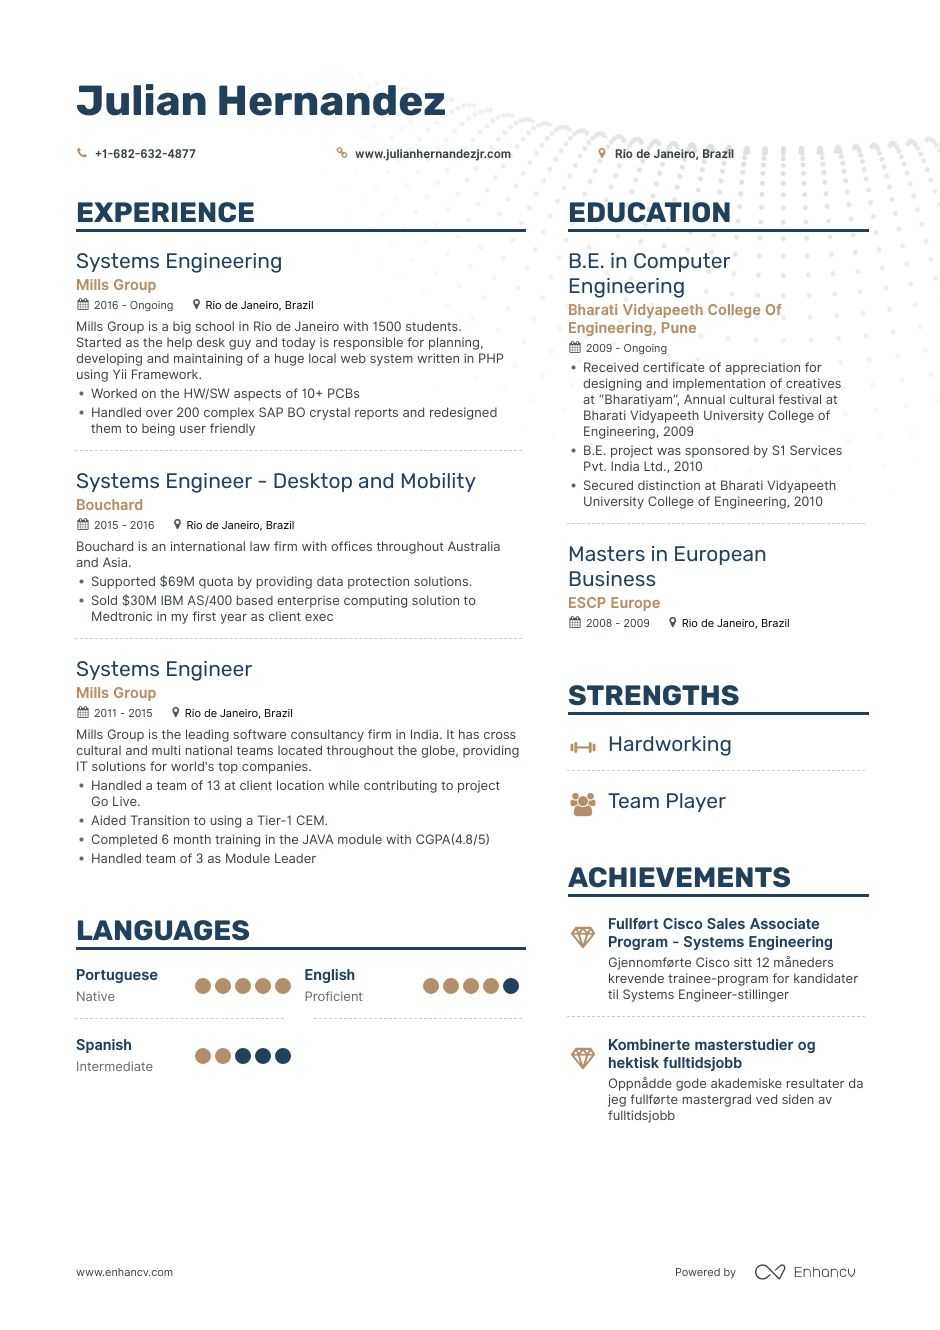 systems engineer resume examples pro tips featured enhancv system format on error next Resume System Engineer Resume Format